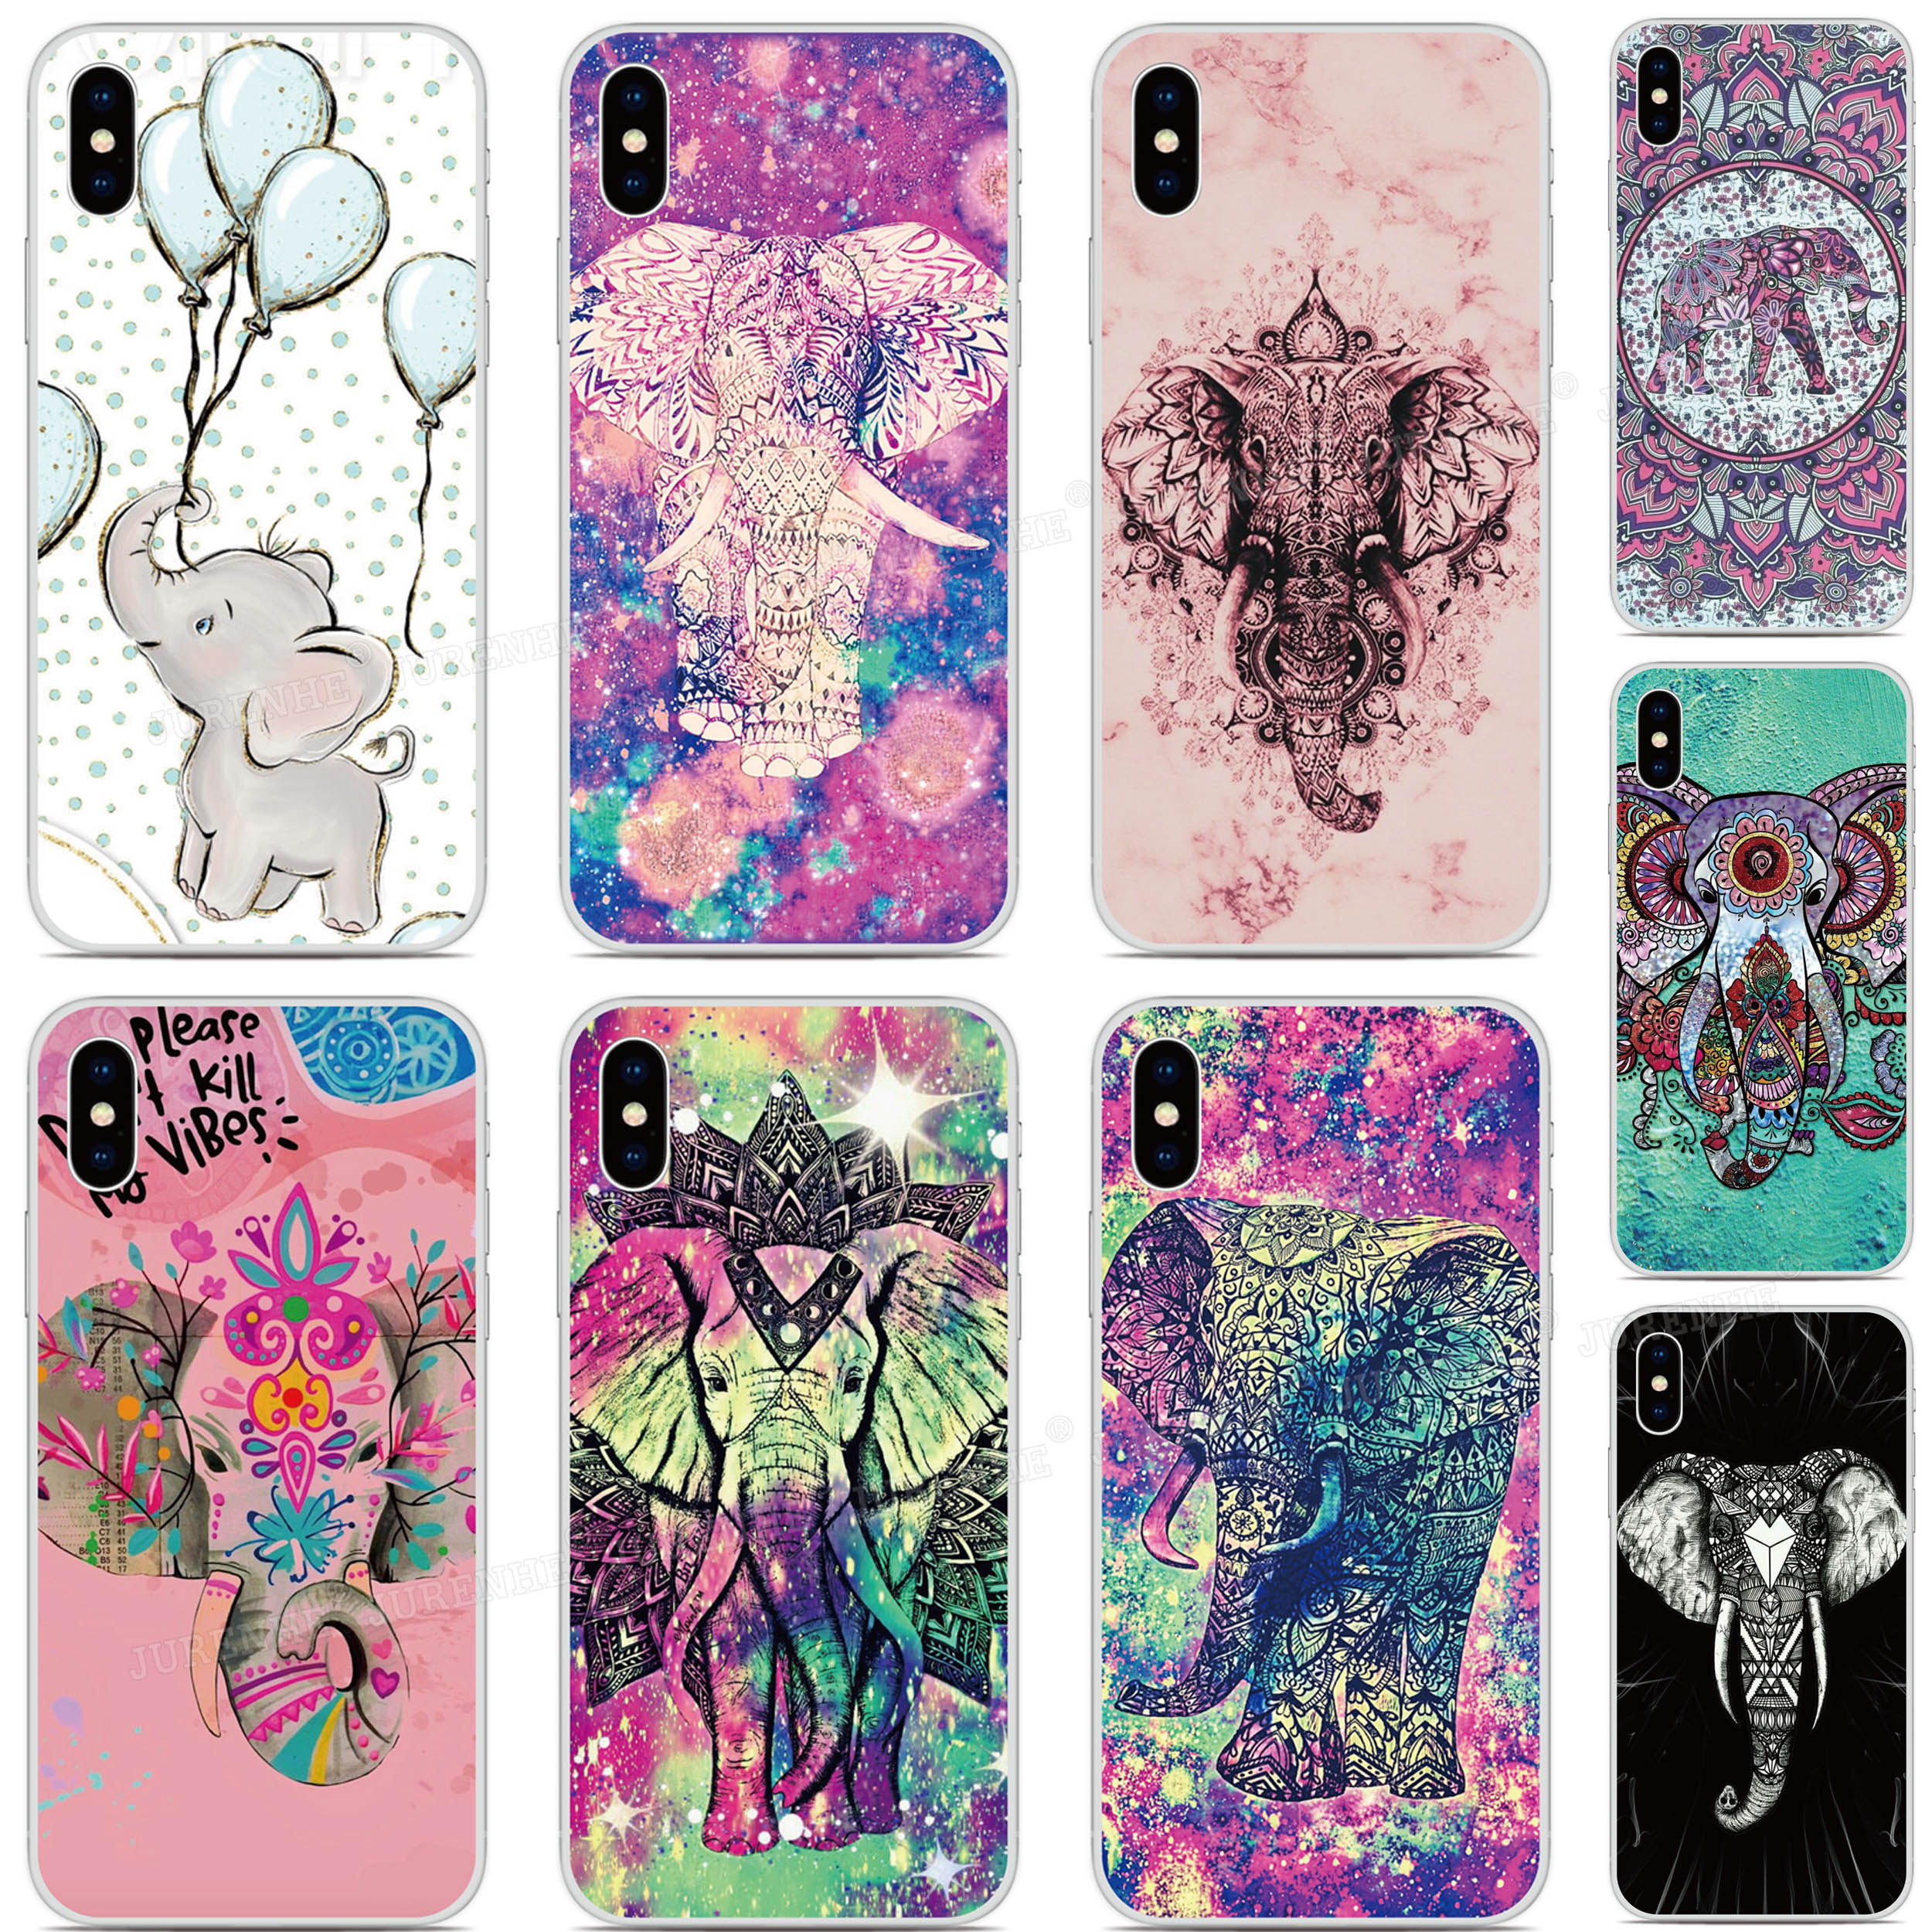 <font><b>Silicone</b></font> Cute Elephant Cover <font><b>Cases</b></font> For <font><b>Doogee</b></font> X95 X90 Y8C Mix 2 N20 Y9 Plus N10 Y7 Y8 <font><b>X70</b></font> X60 X50 X30 X55 X60L X50L Phone <font><b>Case</b></font> image